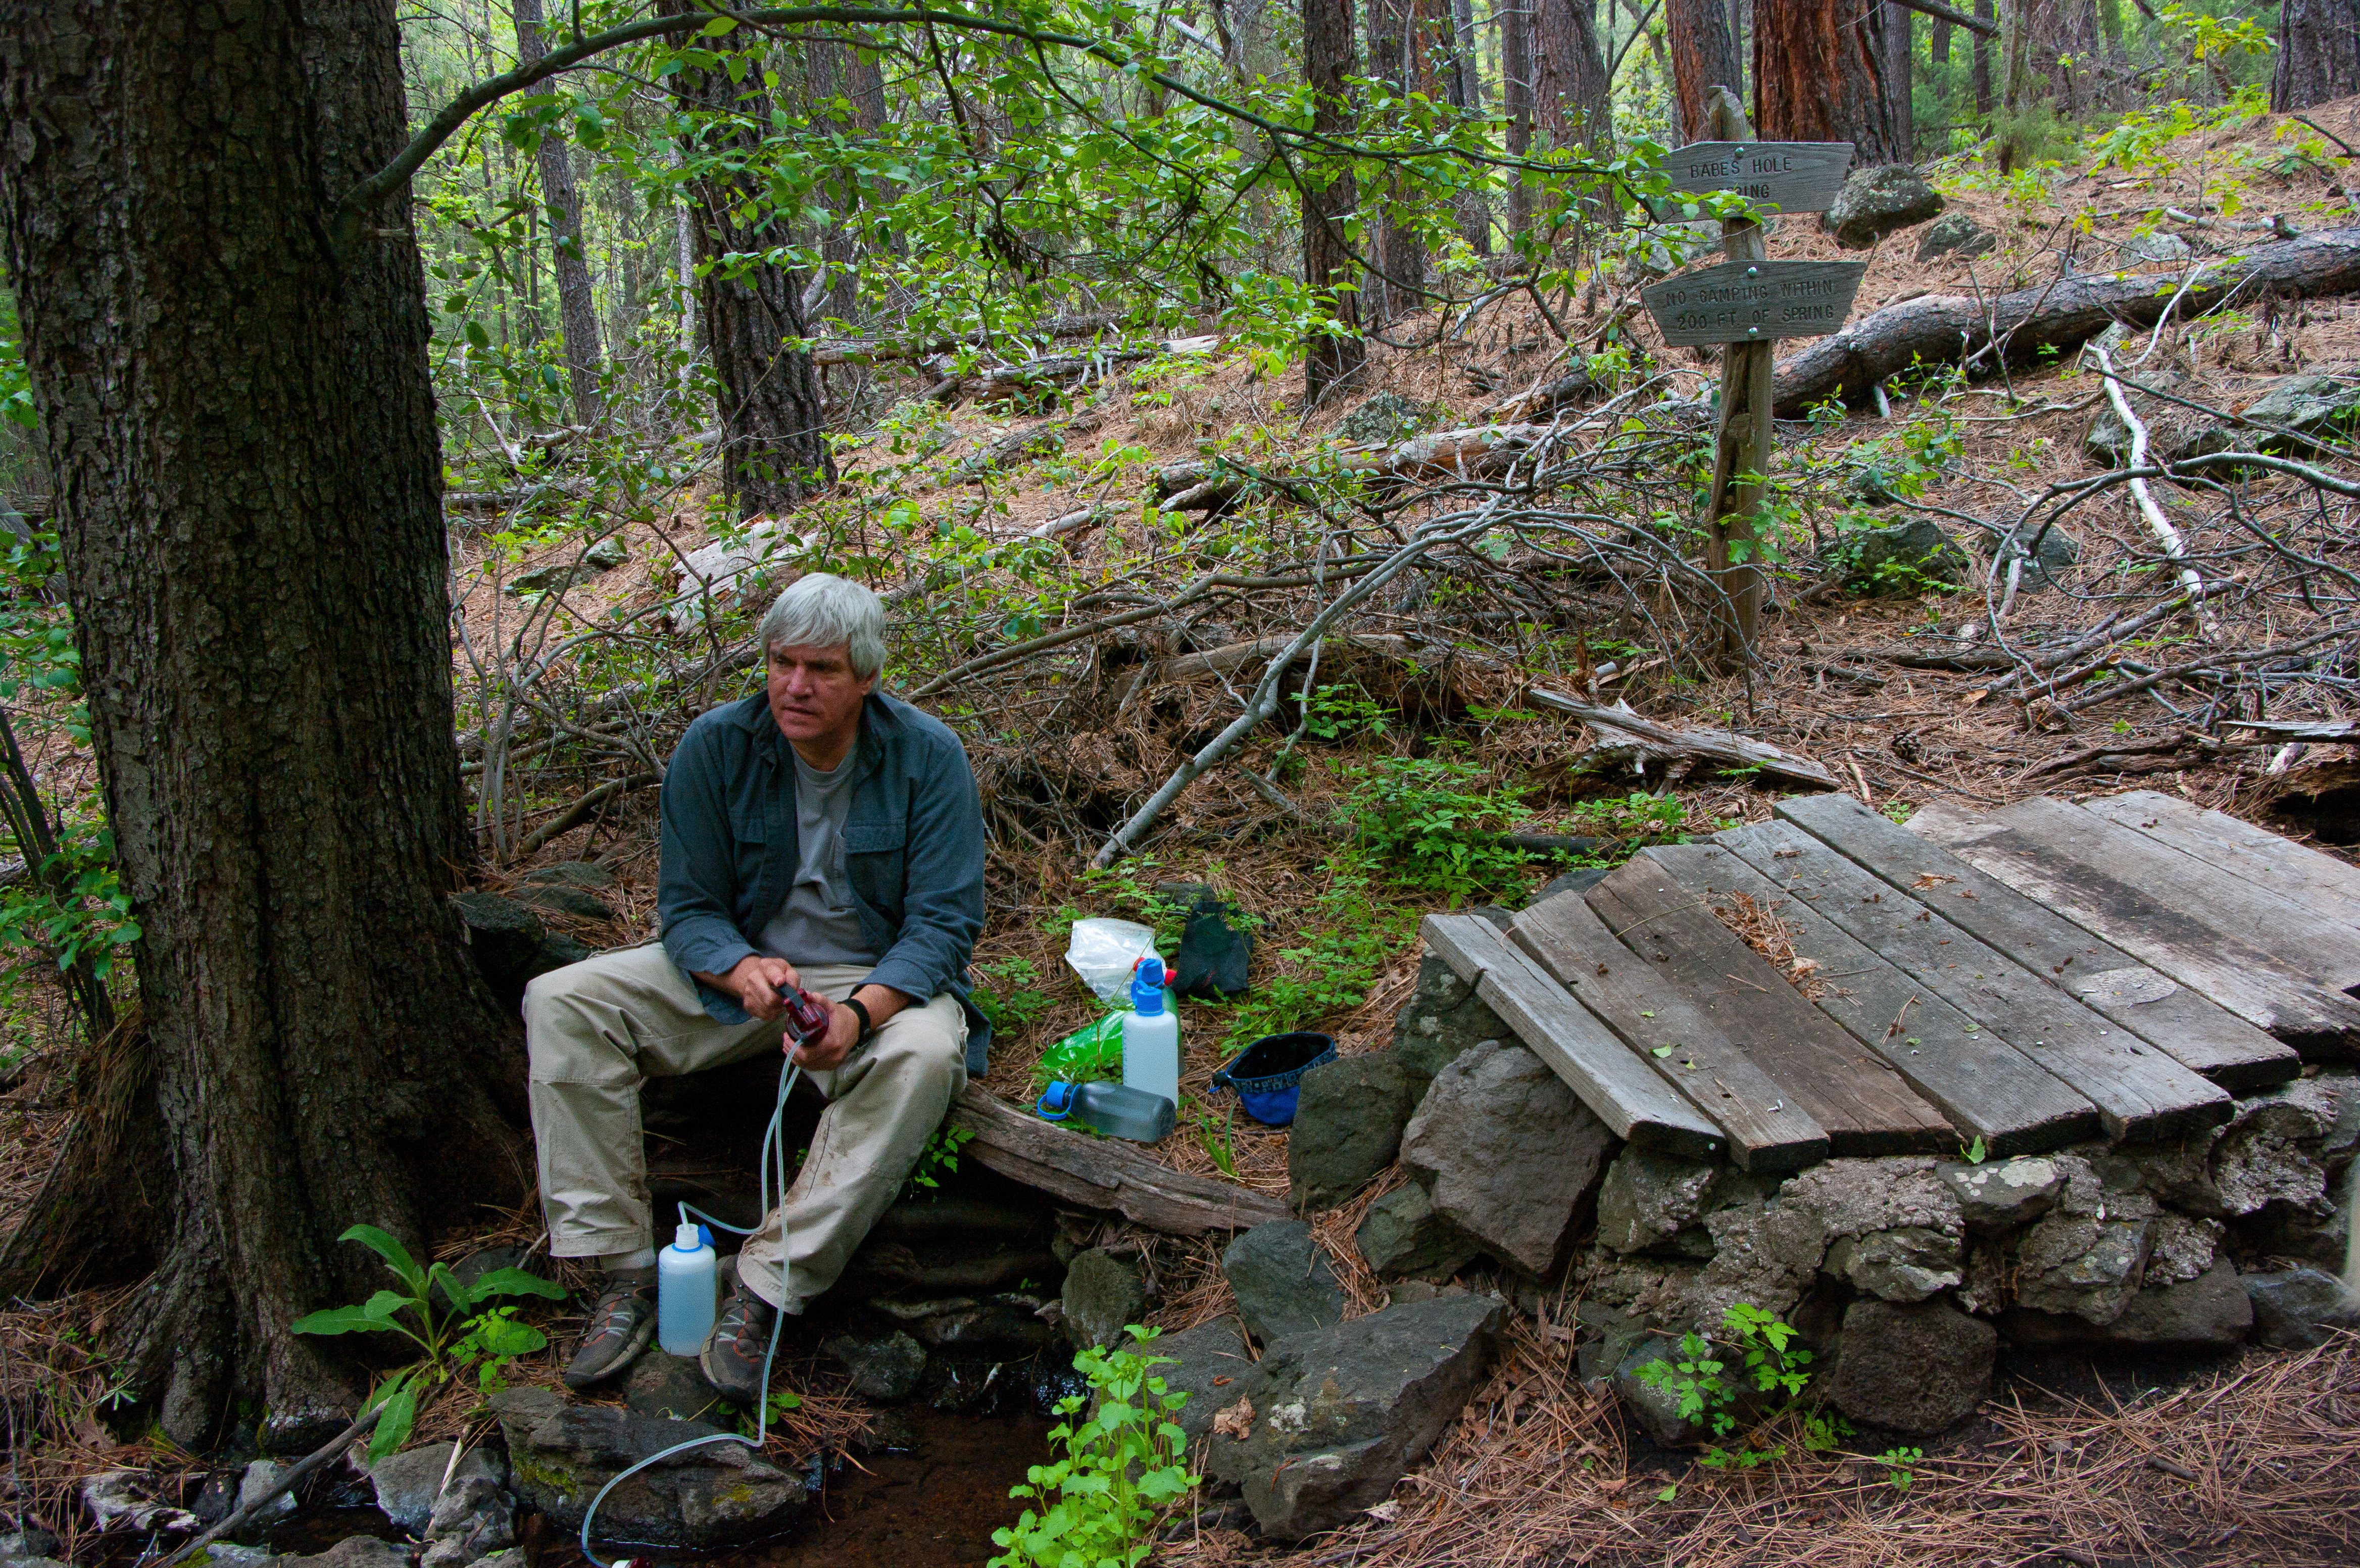 Camp at Babes Hole, Arizona, Backpacking, Camping, Coconino National Forest, HQ Photo